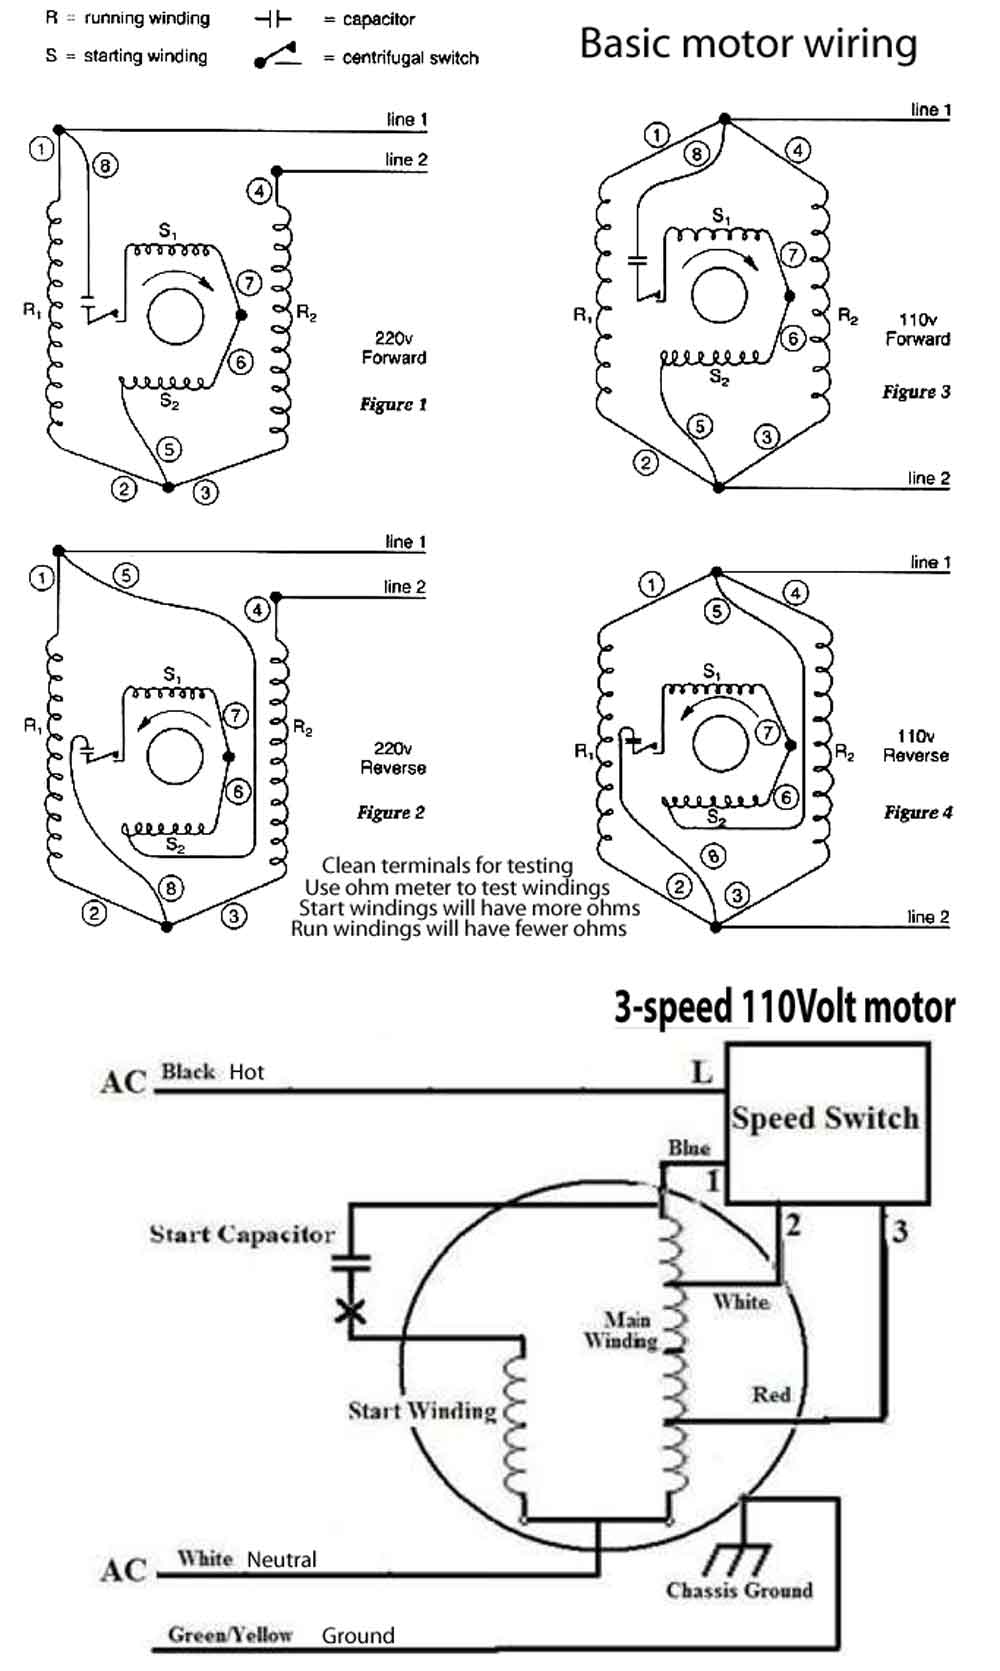 Motor wiring 500 how to wire 3 speed fan switch dayton gas heater wiring diagram at soozxer.org